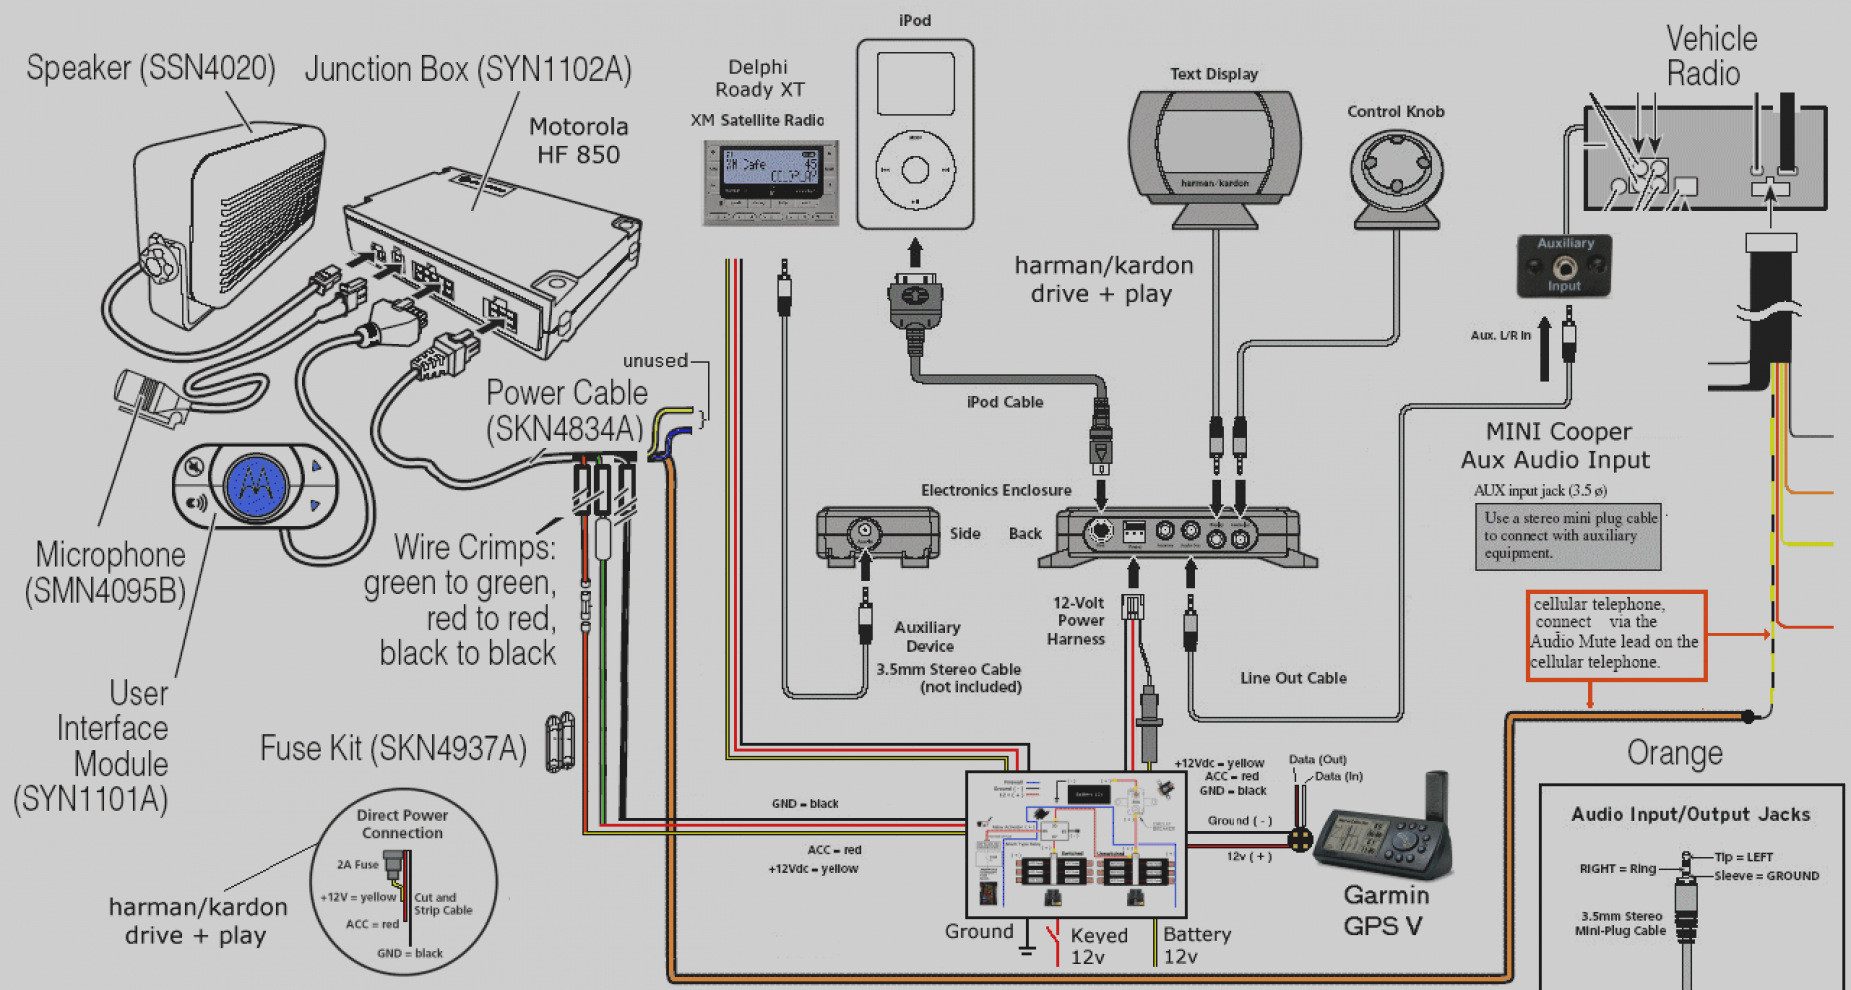 Garmin Usb Wiring Diagram - Wiring Diagrams Konsult on gps wire diagram, power supply wire diagram, usb power harness, fan wire diagram, computer power wire diagram, usb power battery, usb power connector, cpu power wire diagram, usb power cord, ac wire diagram, power cord wire diagram, usb power specification, usb power cable, sata wire diagram, usb power switch, usb power plug, compressor wire diagram,